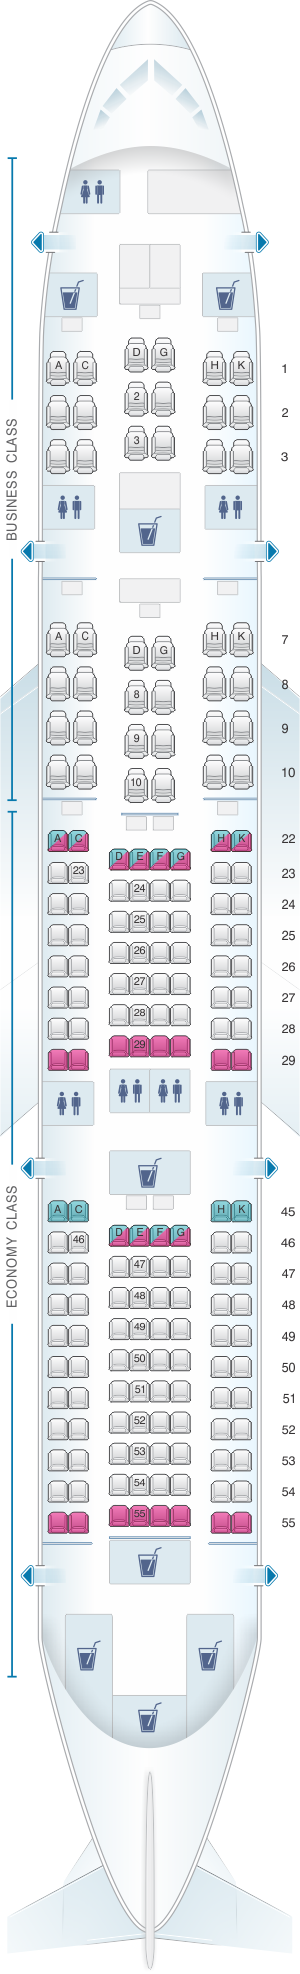 Seat map for Japan Airlines (JAL) Boeing B787-8 E01